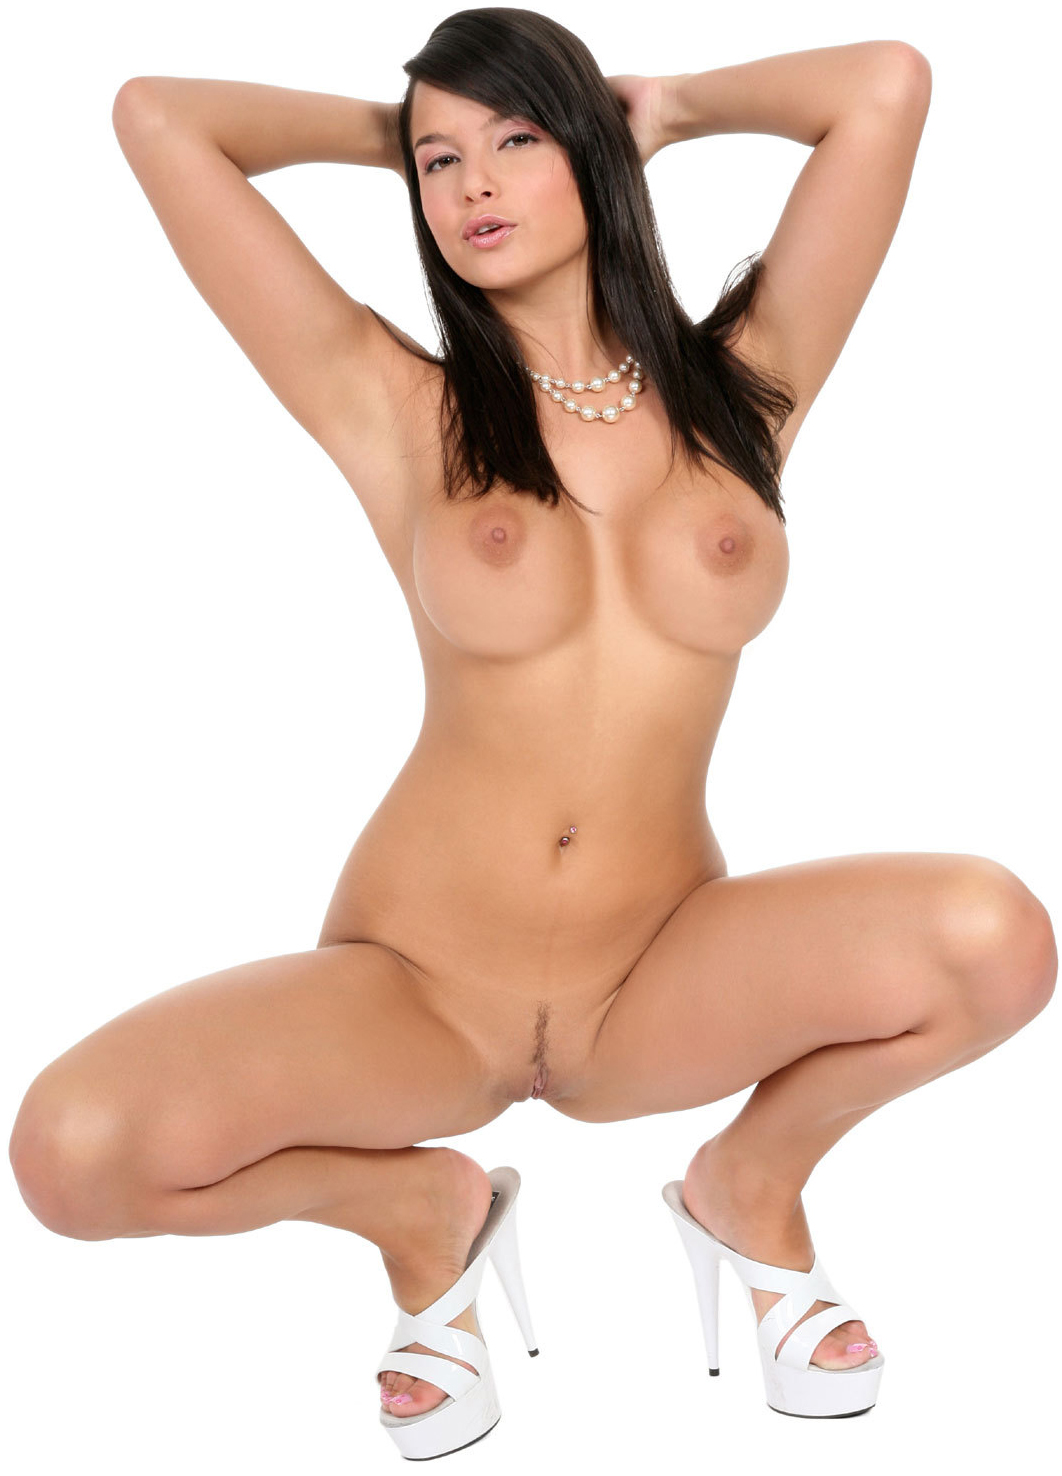 tiny tits porn high class independent london escorts